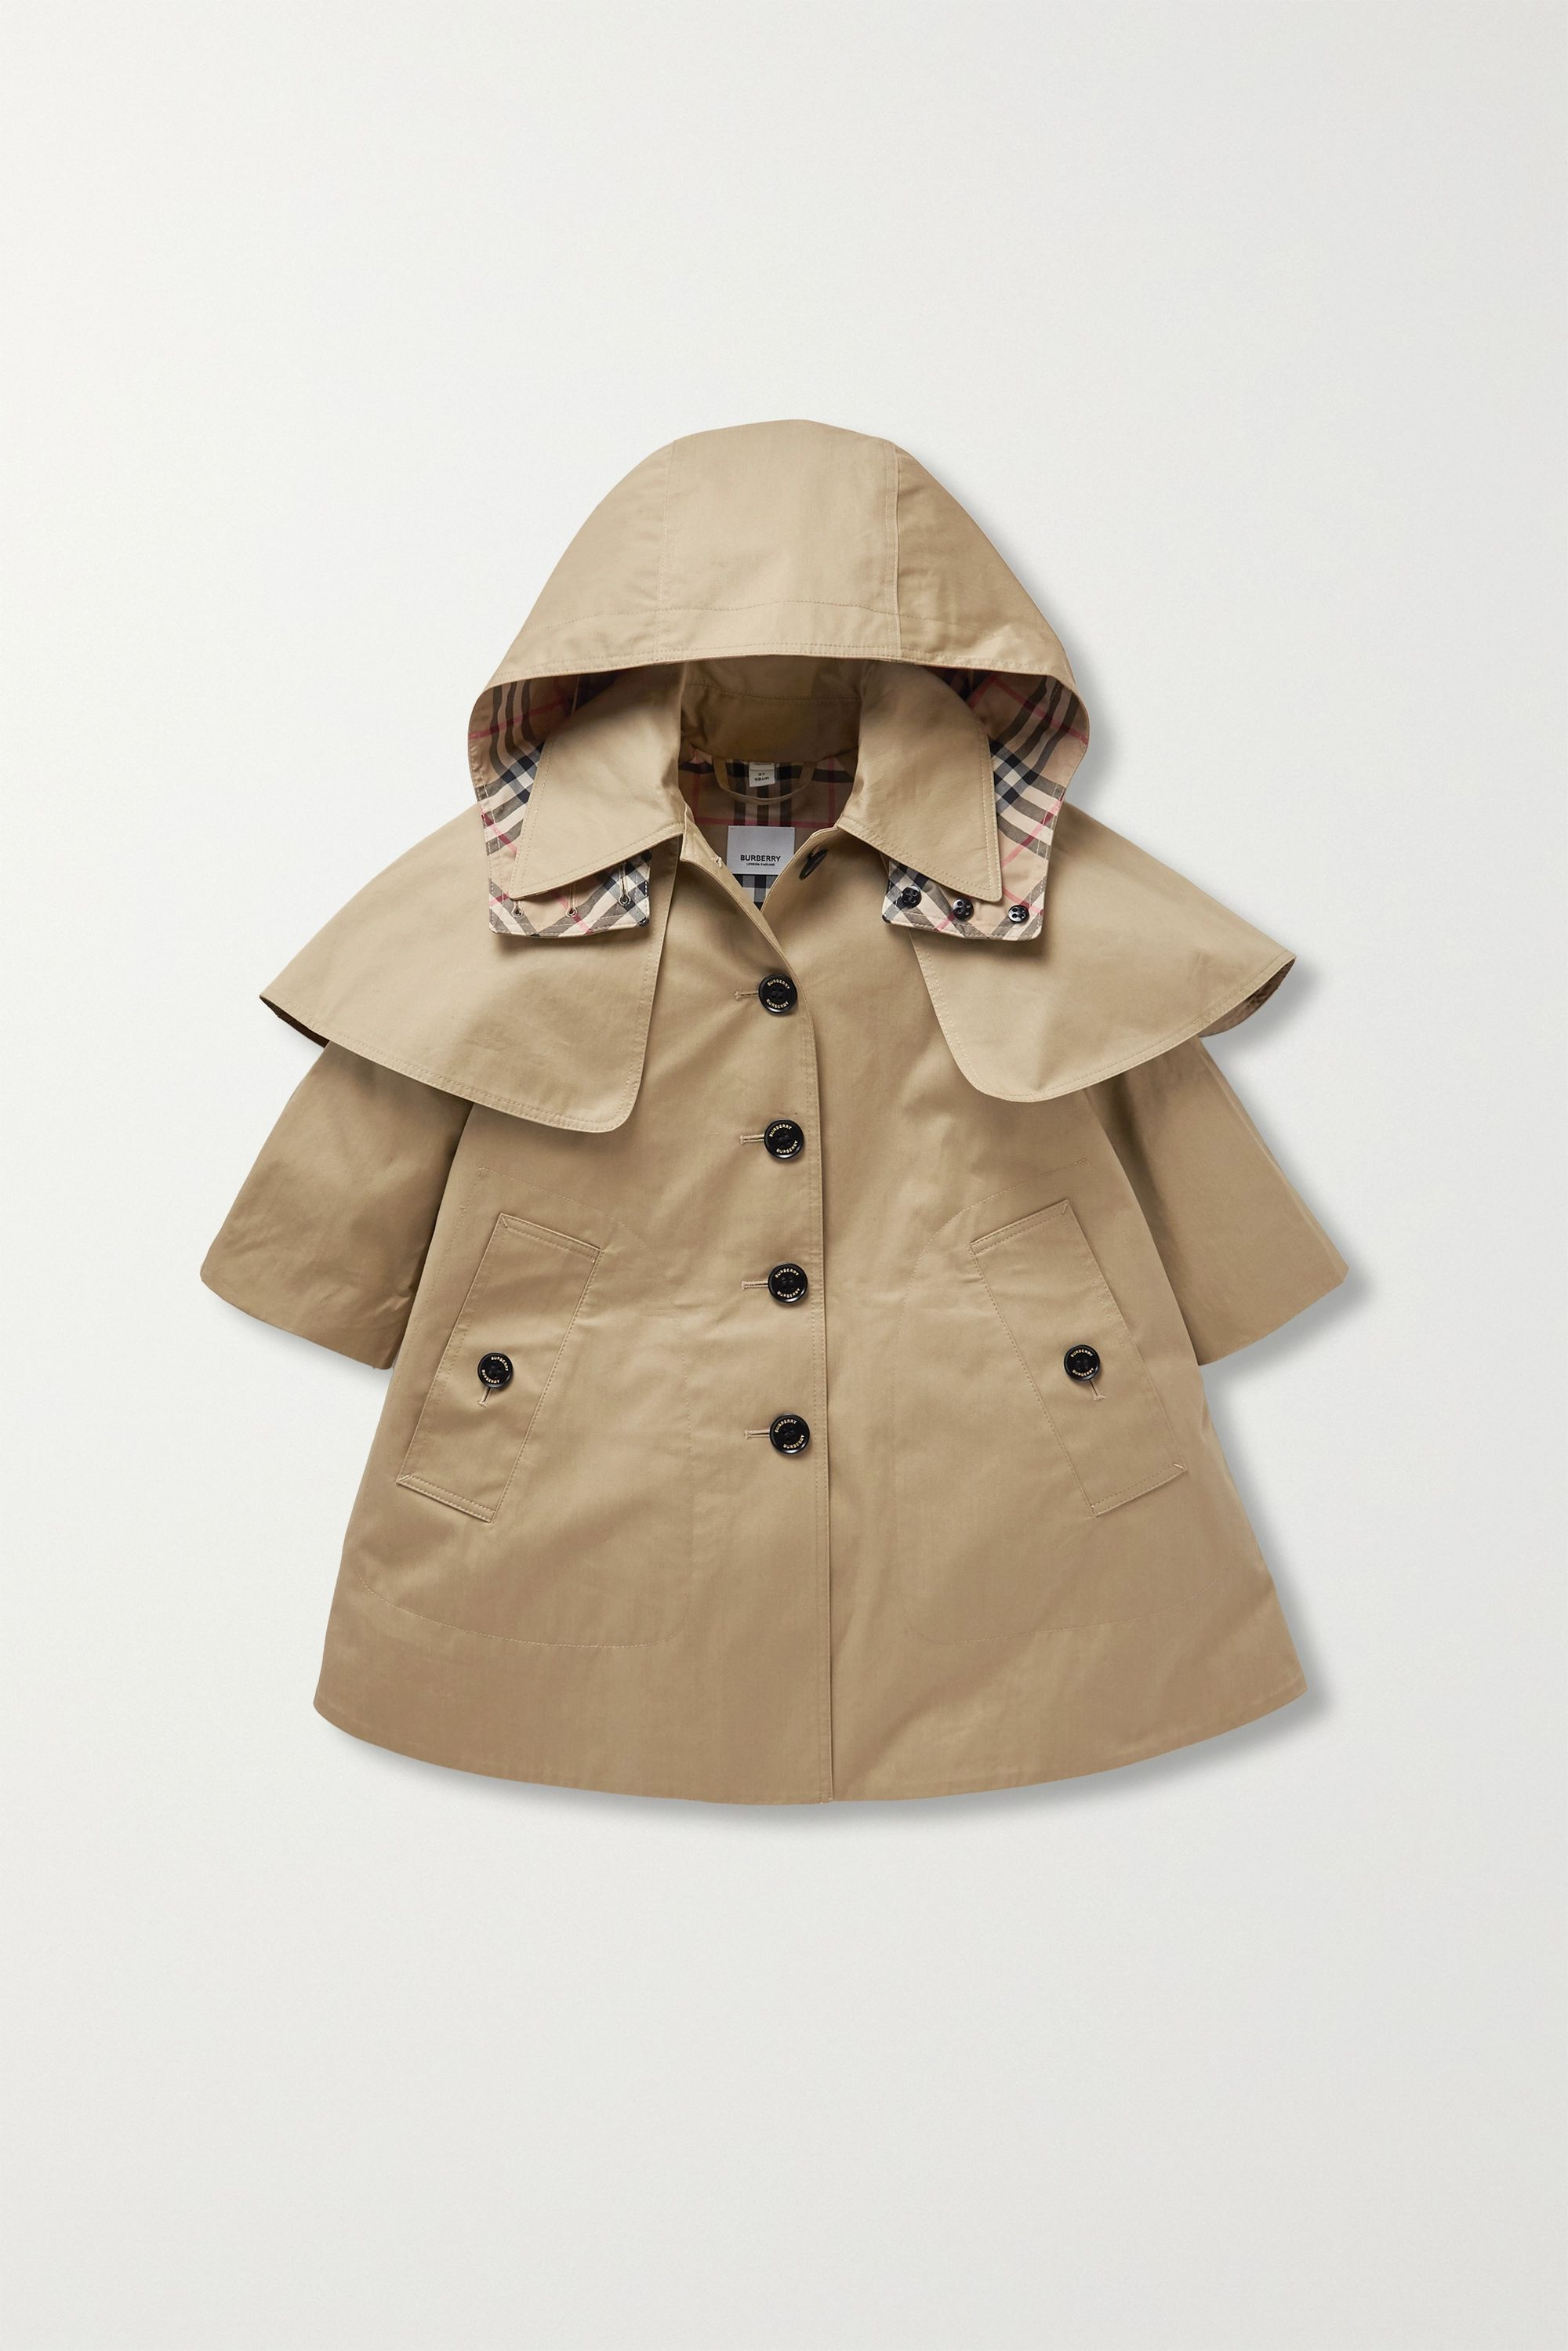 Burberry Kids Ages 3 - 12 cotton-gabardine trench coat